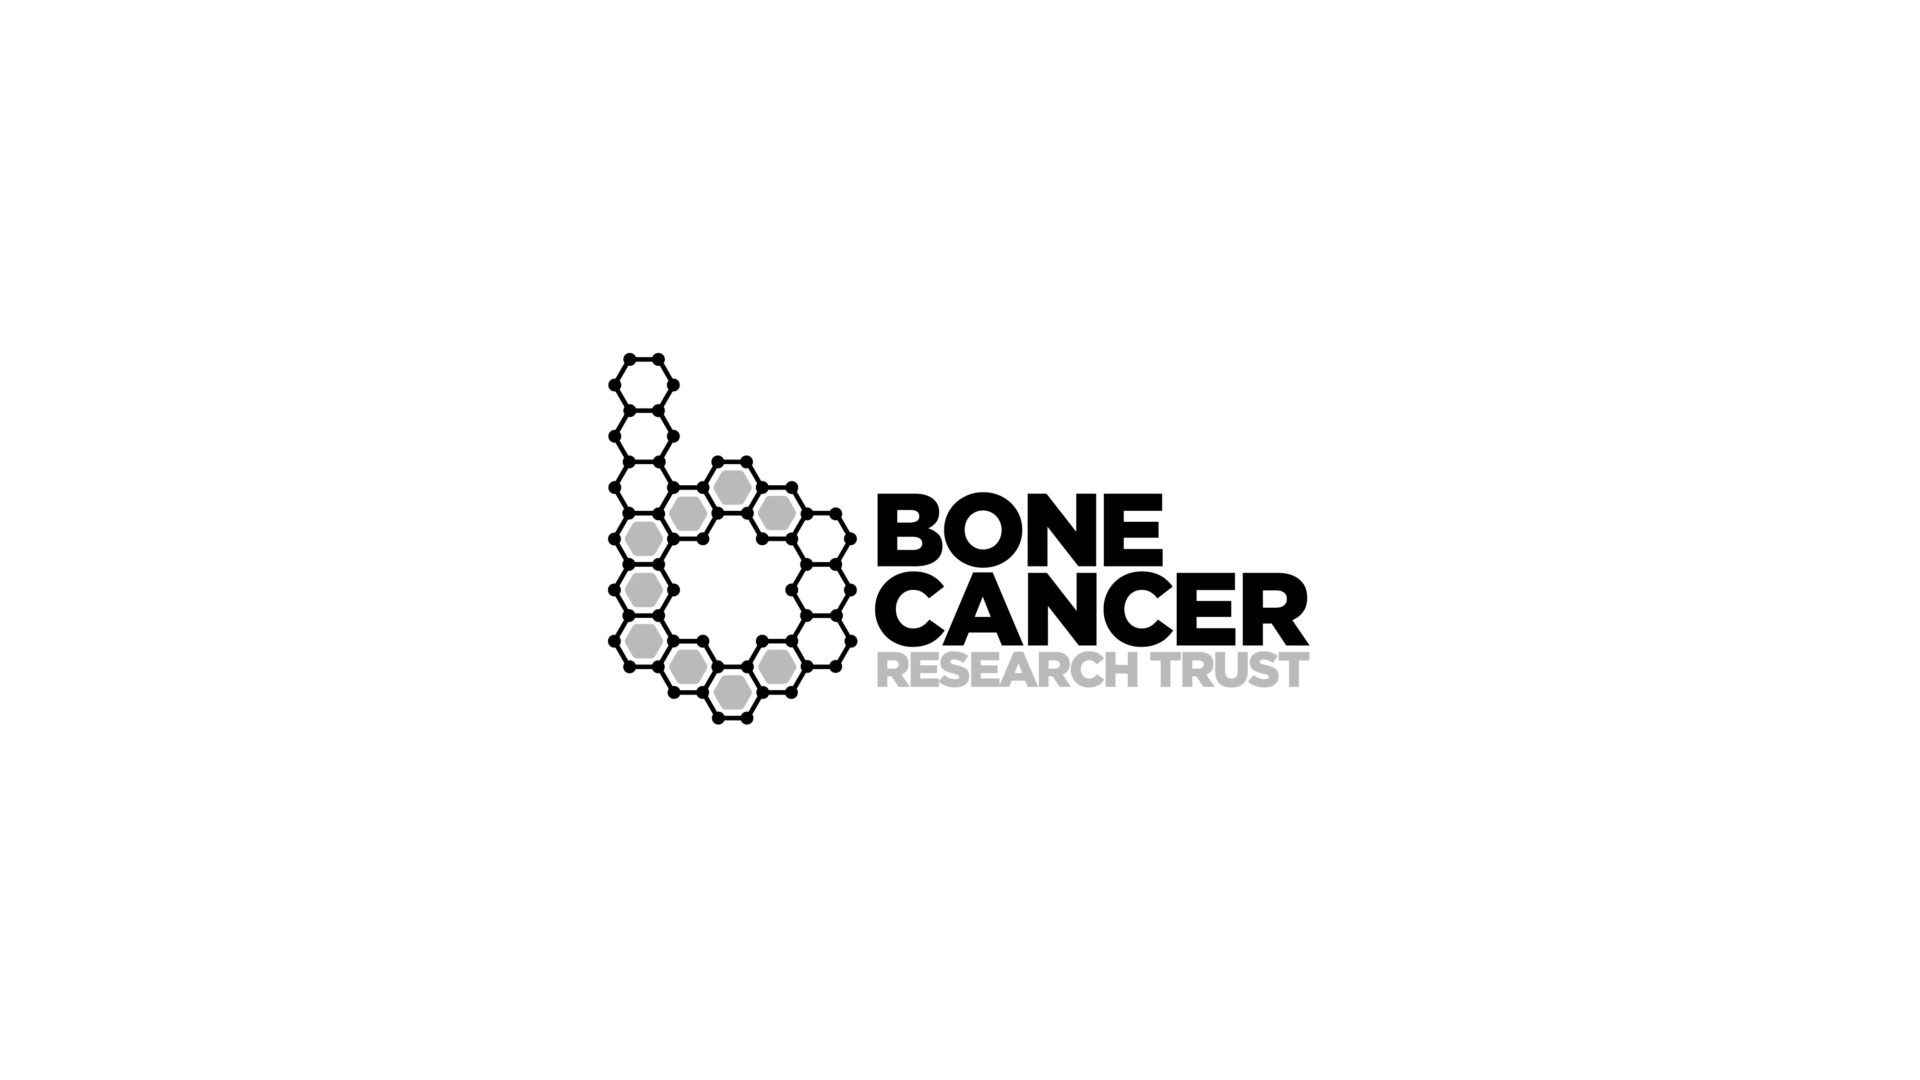 black and white Bone Cancer Research Trust logo